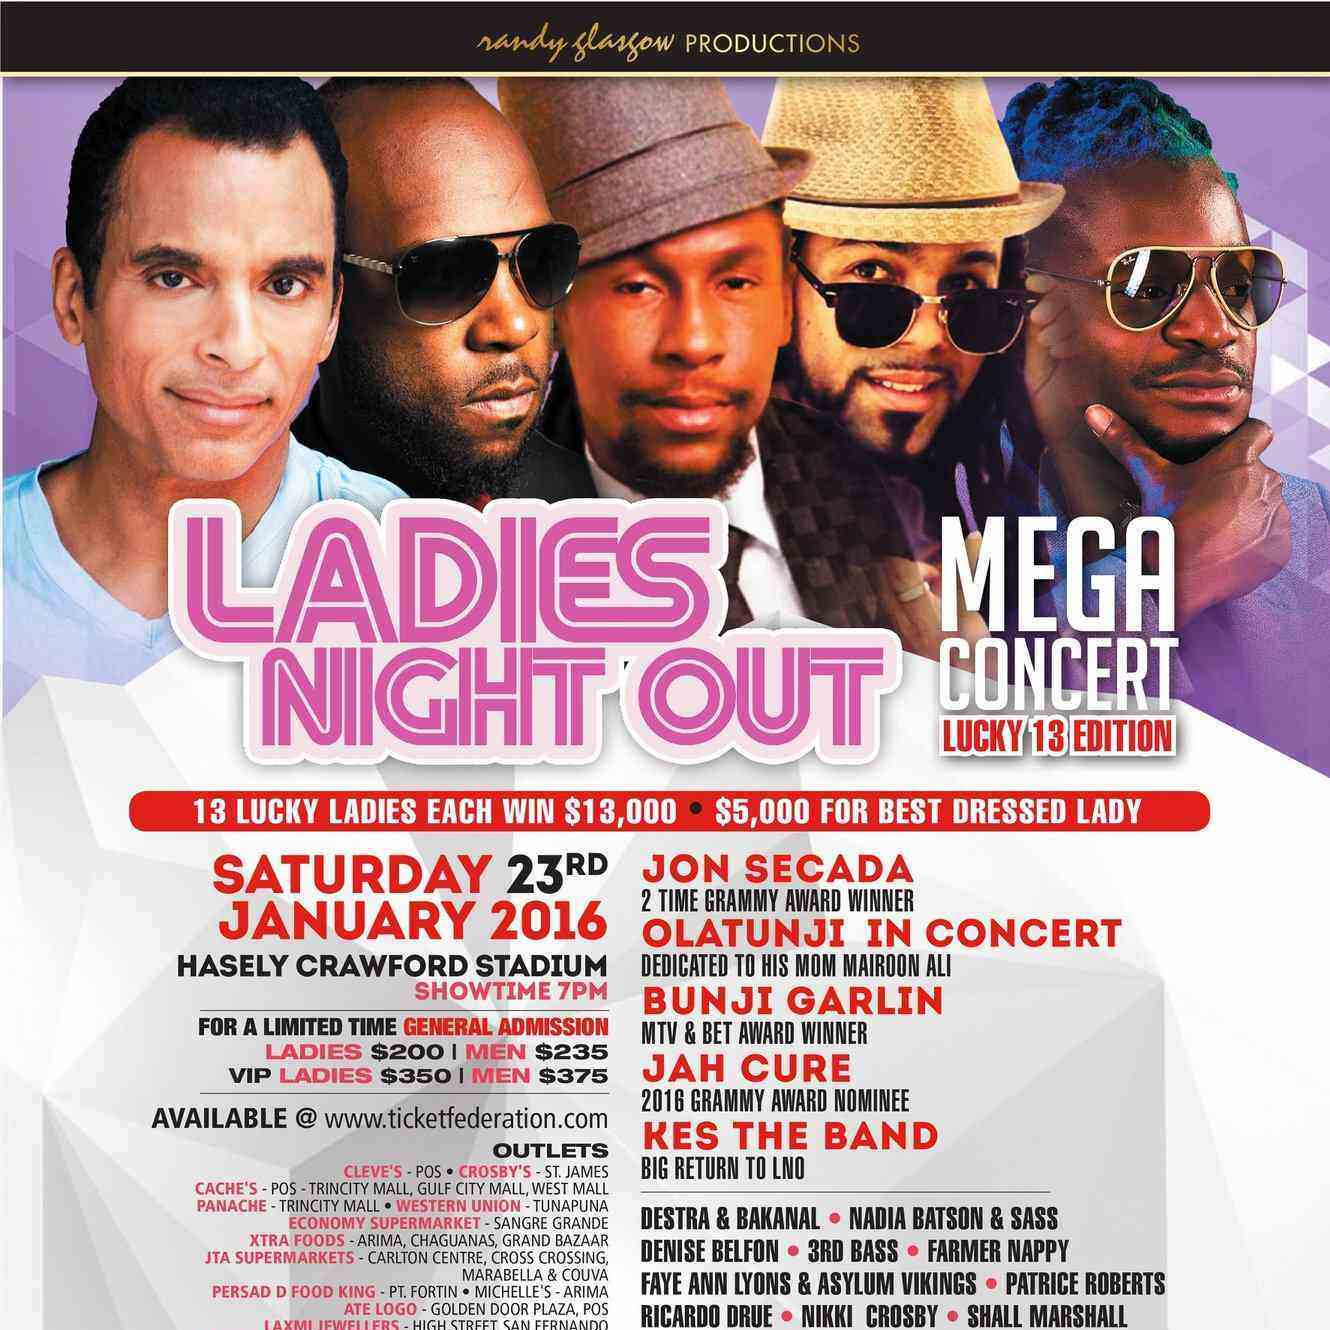 LADIES NIGHT OUT - MEGA CONCERT 2016